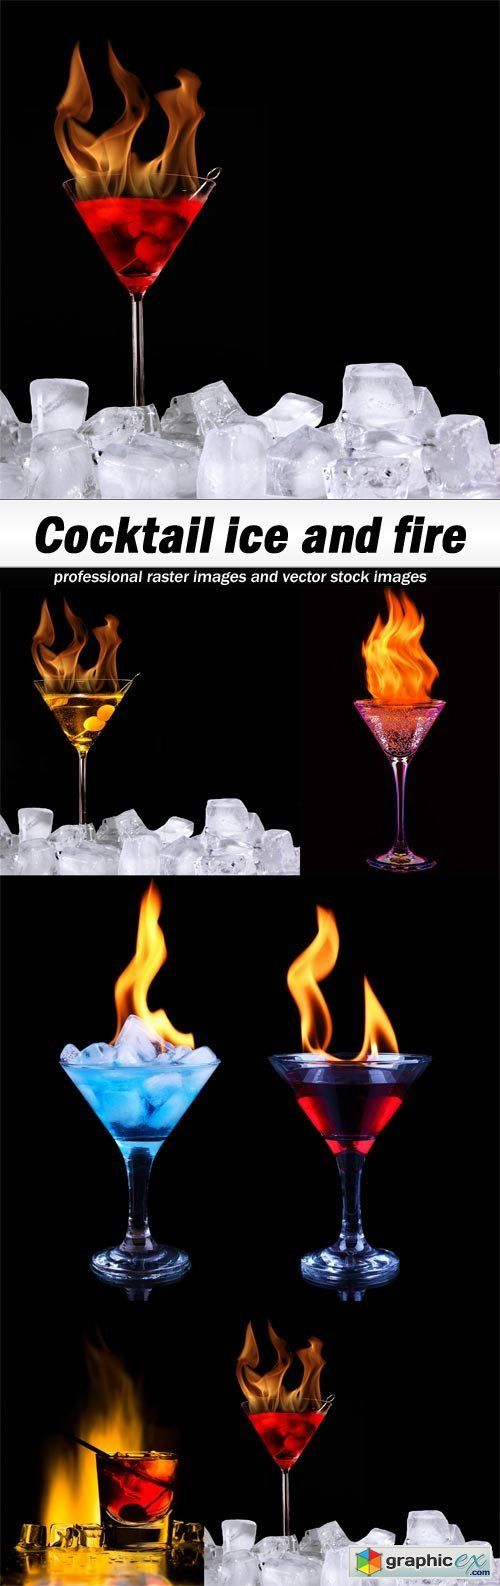 Cocktail ice and fire  stock images